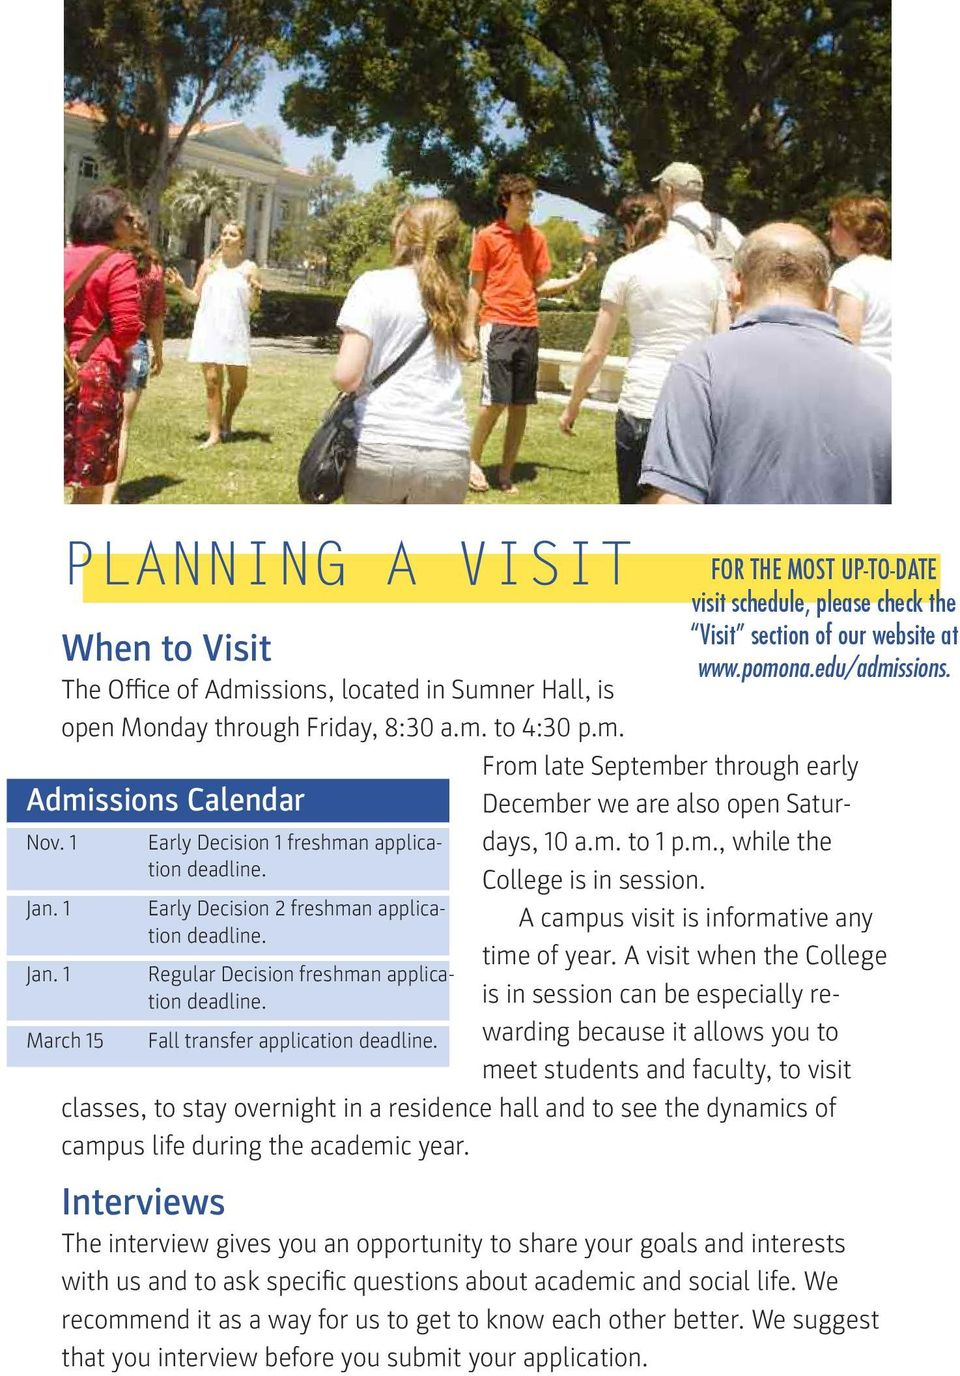 For the most up-to-date visit schedule, please check the Visit section of our website at www.pomona.edu/admissions. From late September through early December we are also open Saturdays, 10 a.m. to 1 p.